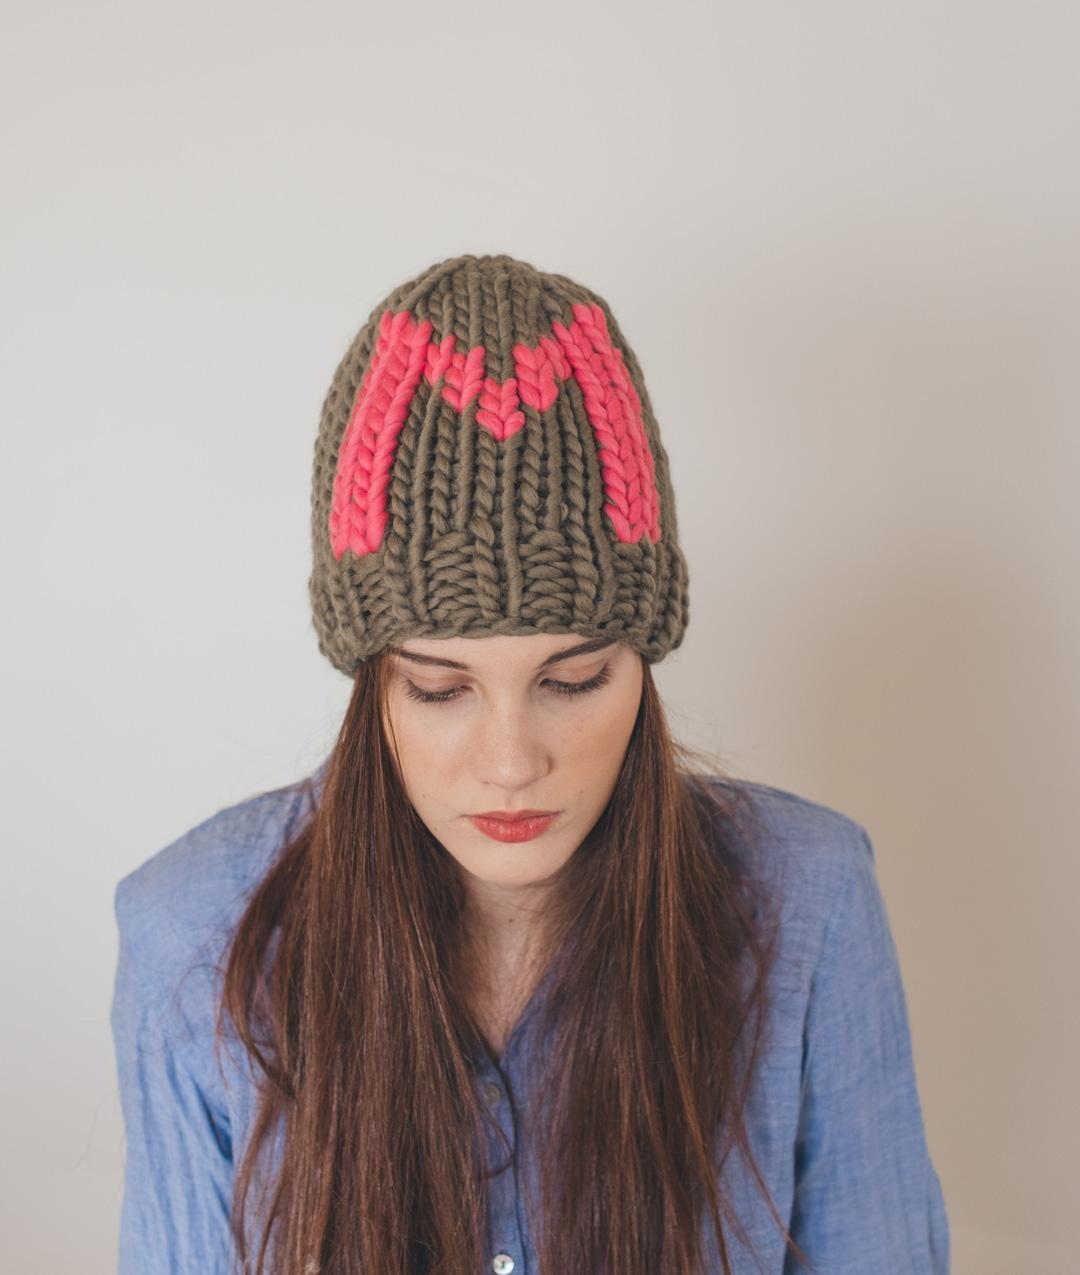 Hats and Beanies - Wool - Betta Beanie - 1